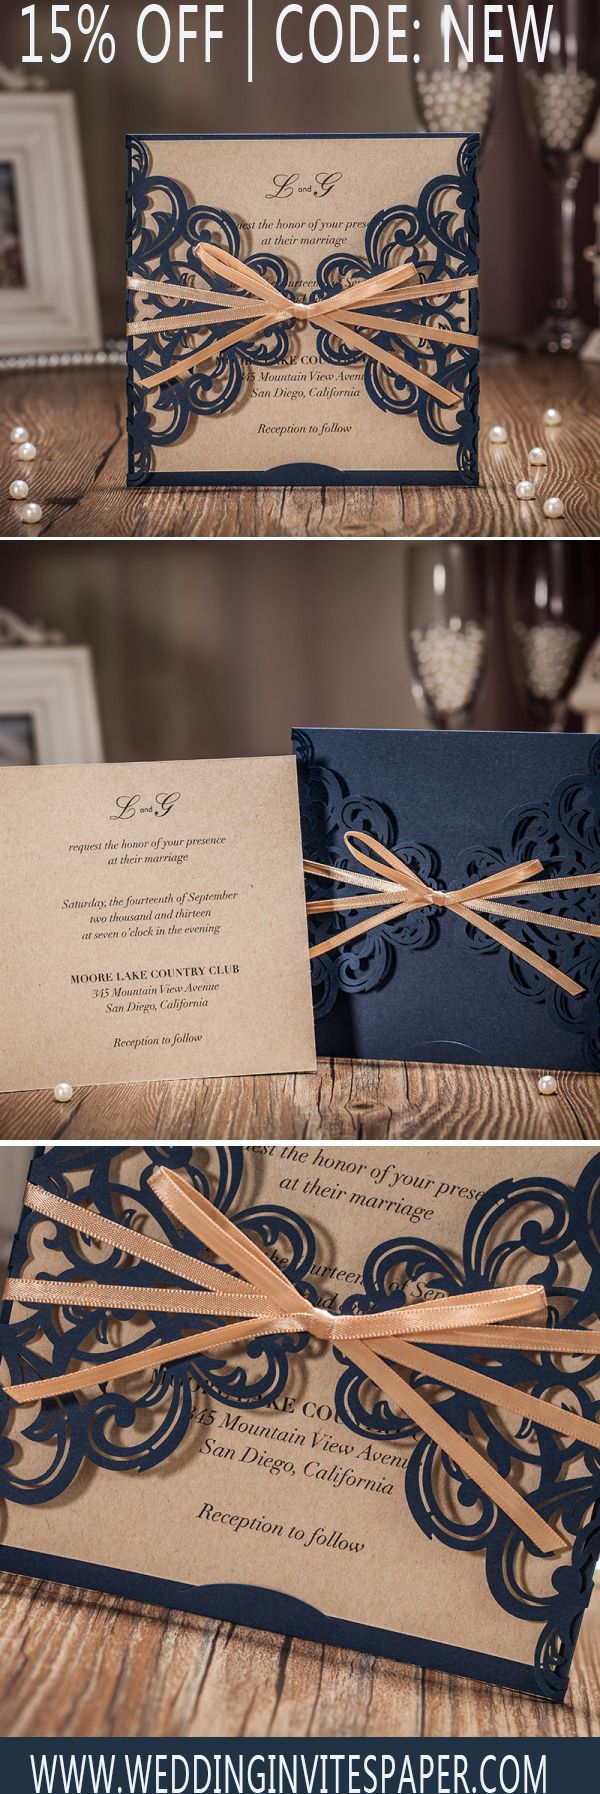 diy wedding invites rustic%0A Elegant Navy Blue Laser Cut Wedding Invitations With Ribbon WLC